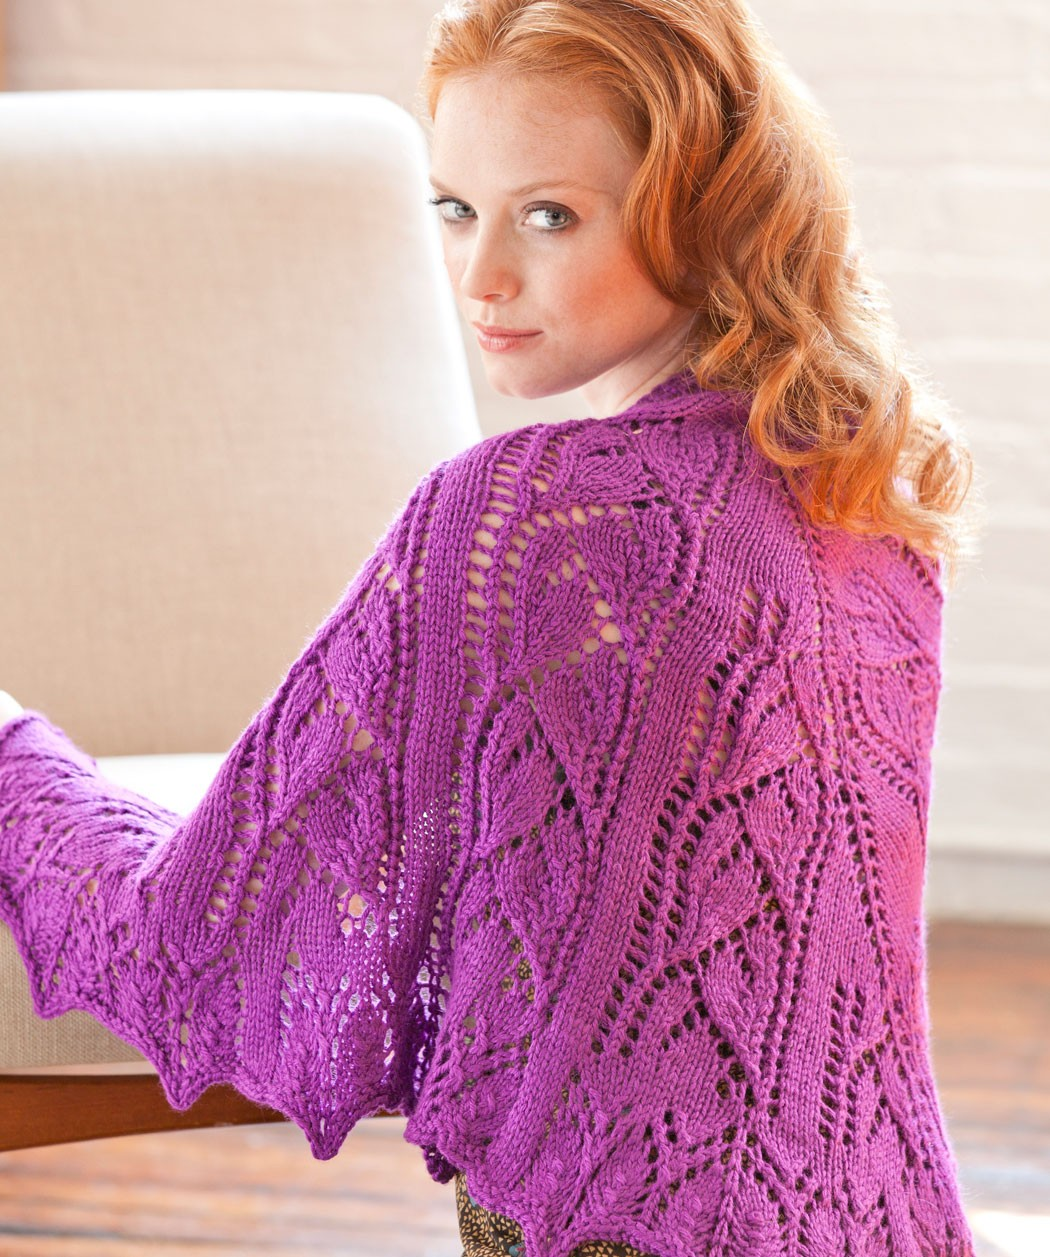 Knitted Shawl Patterns Free : Free Knitting Shawl Patterns